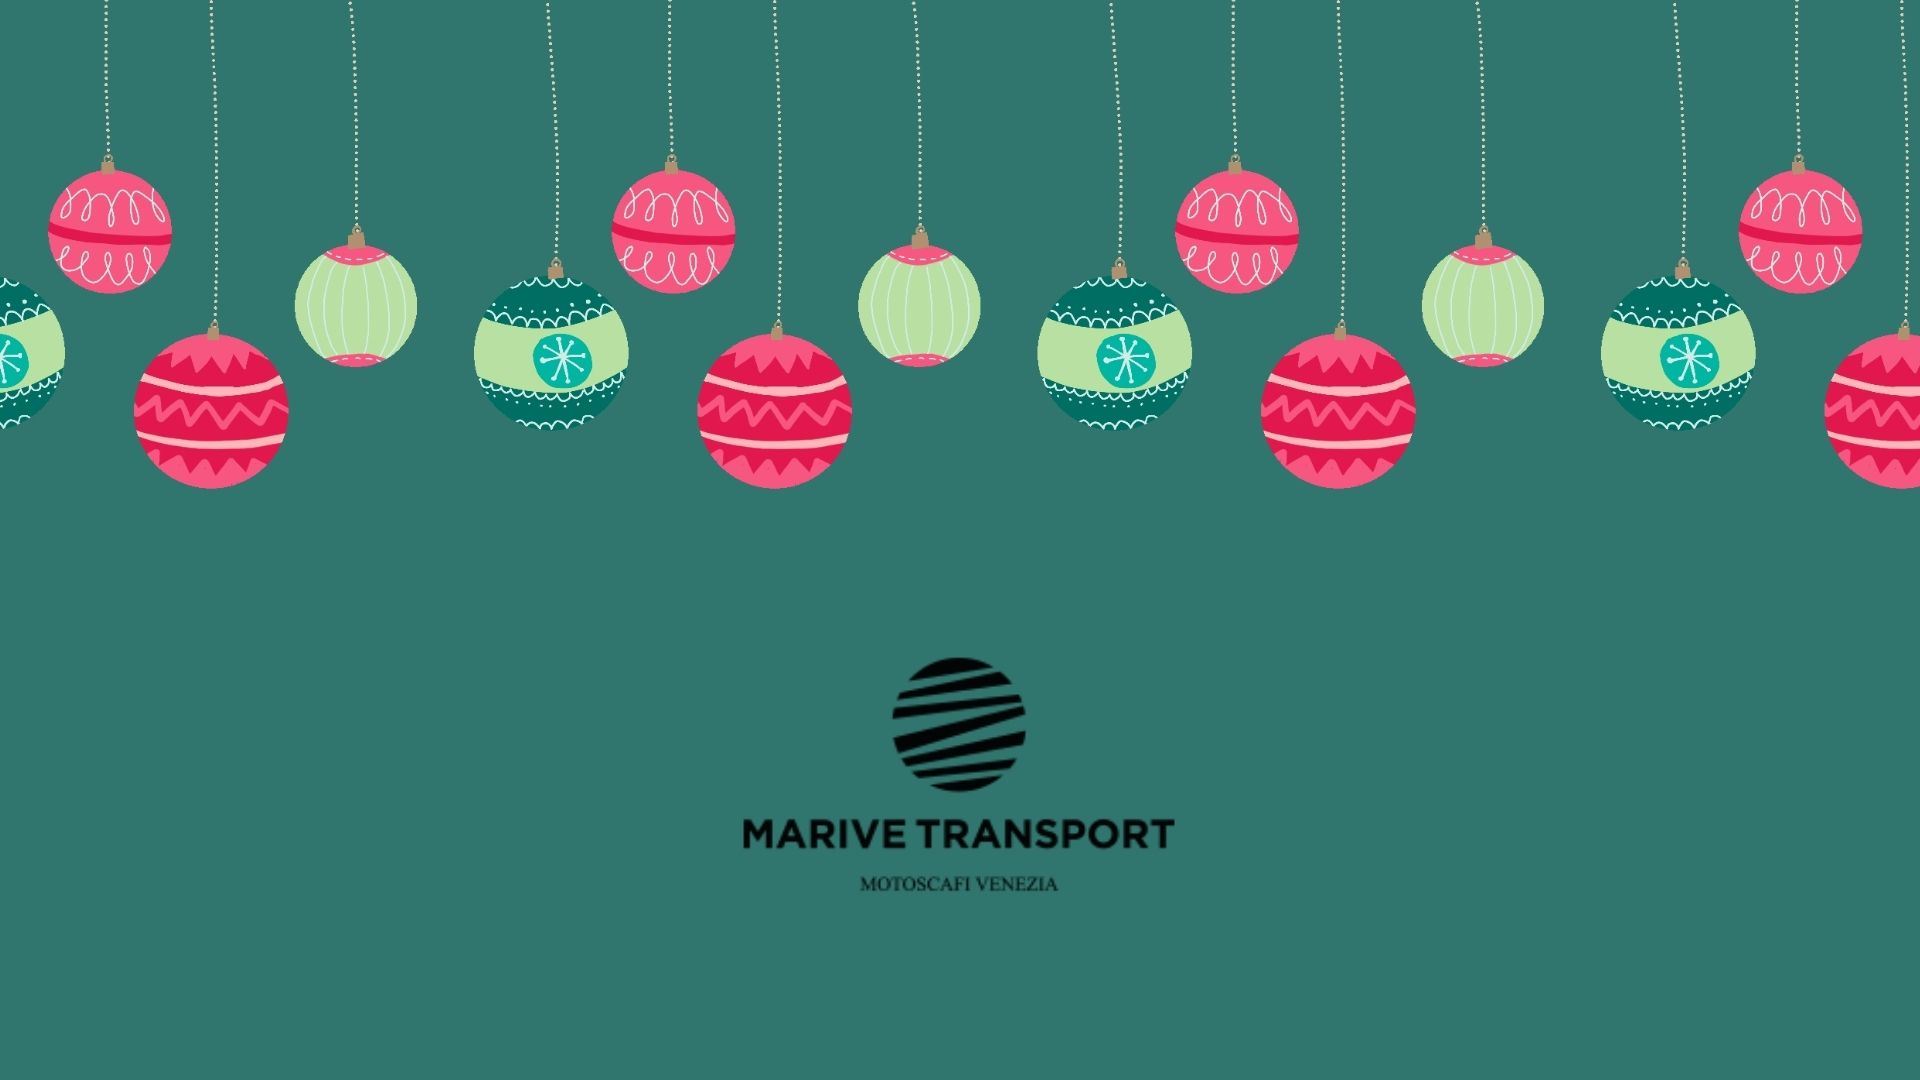 Merry Christmas from Marive Transport